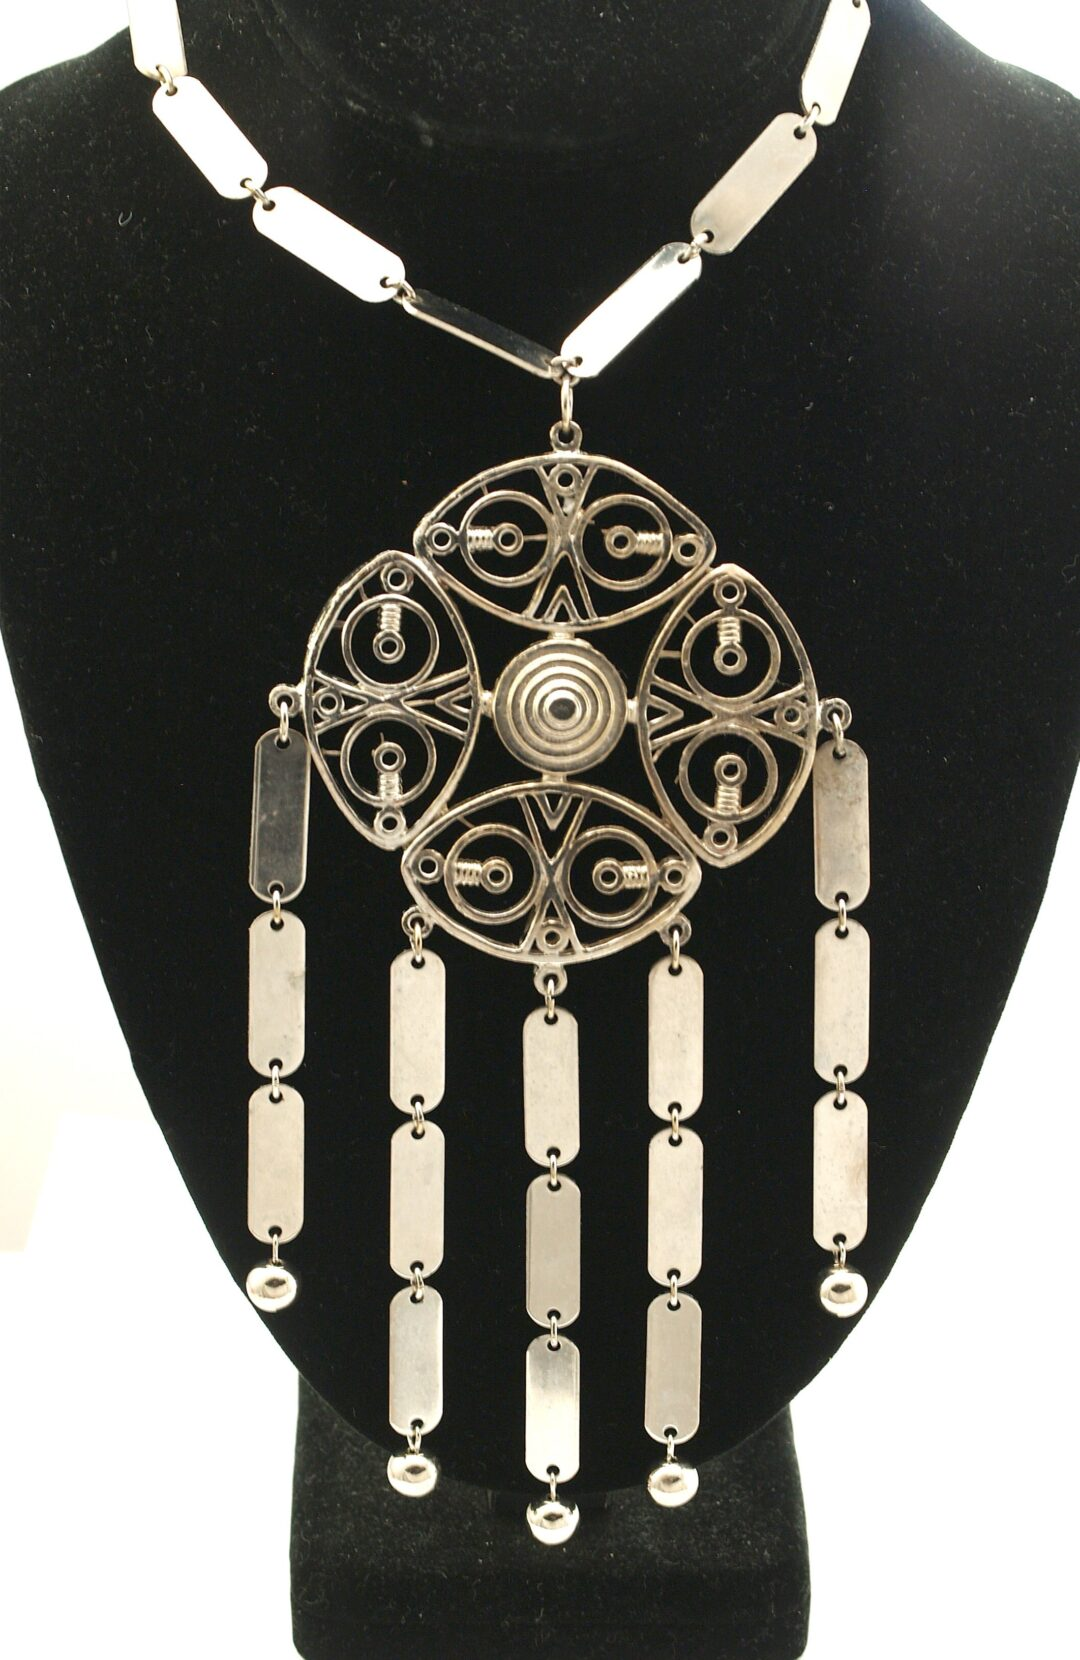 Vintage 1970s Large Pendant Necklace with Open Metalwork